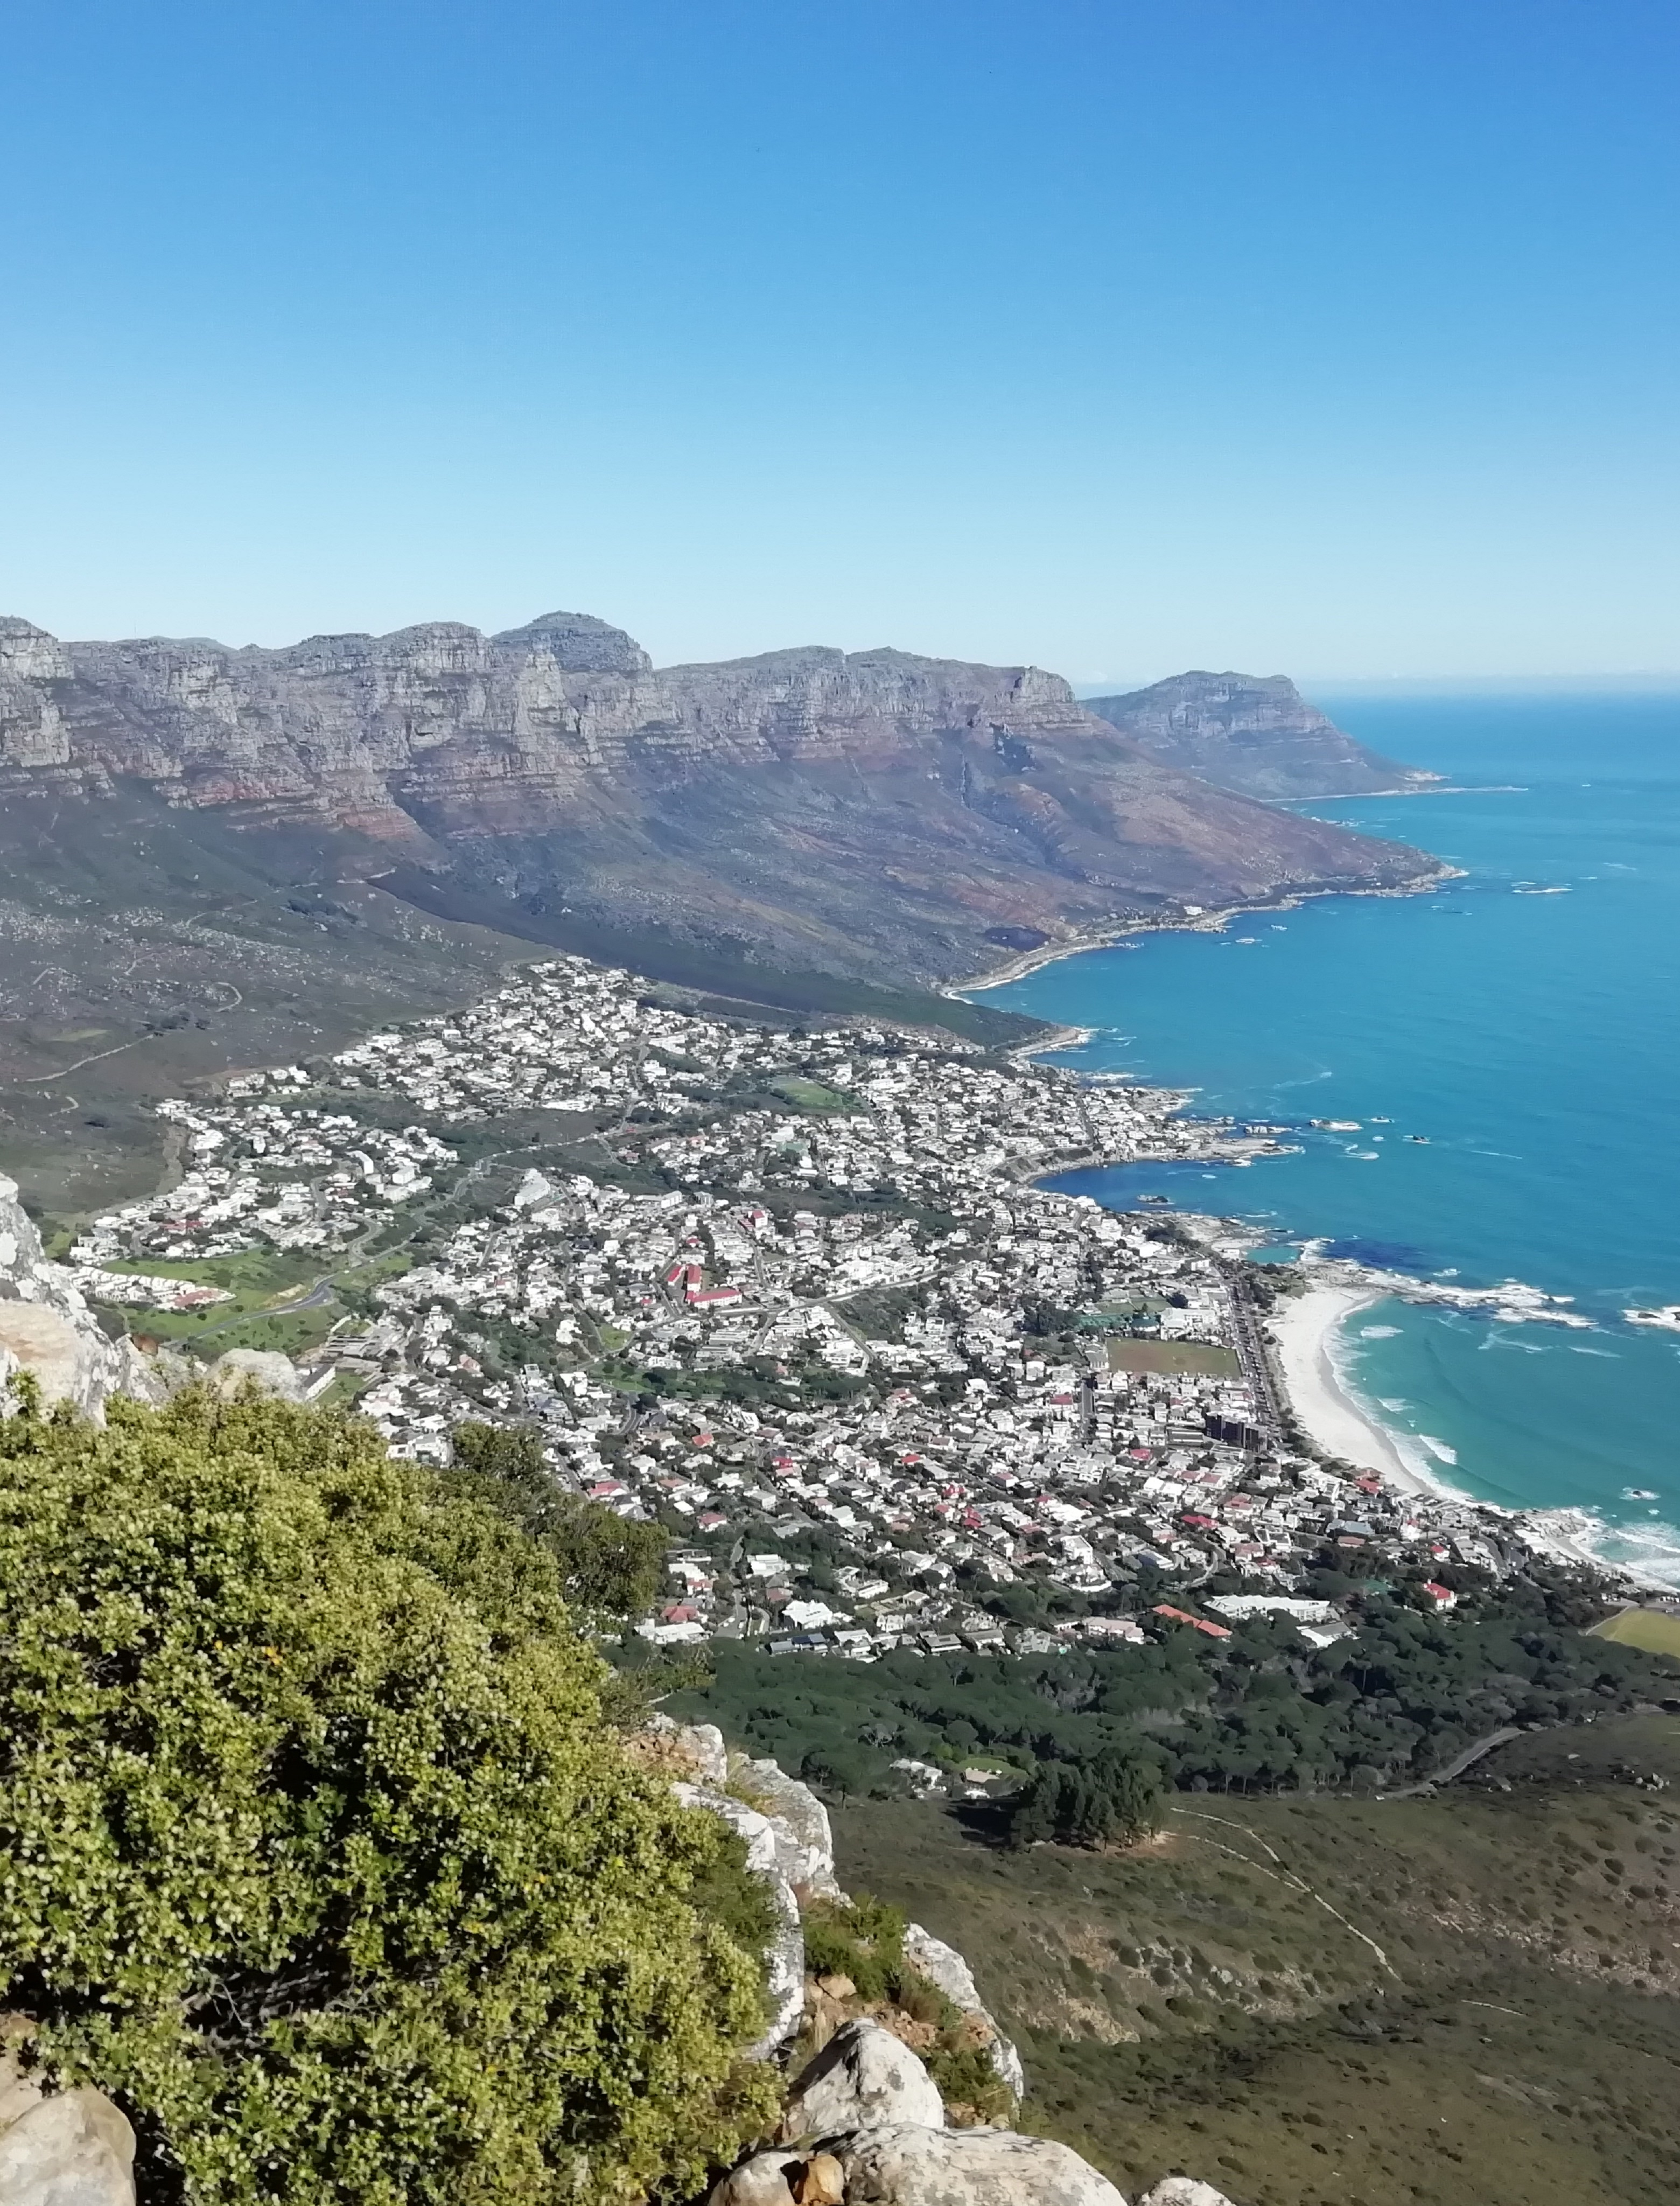 View over Camps Bay from Lion's Head, Cape Town, South Africa